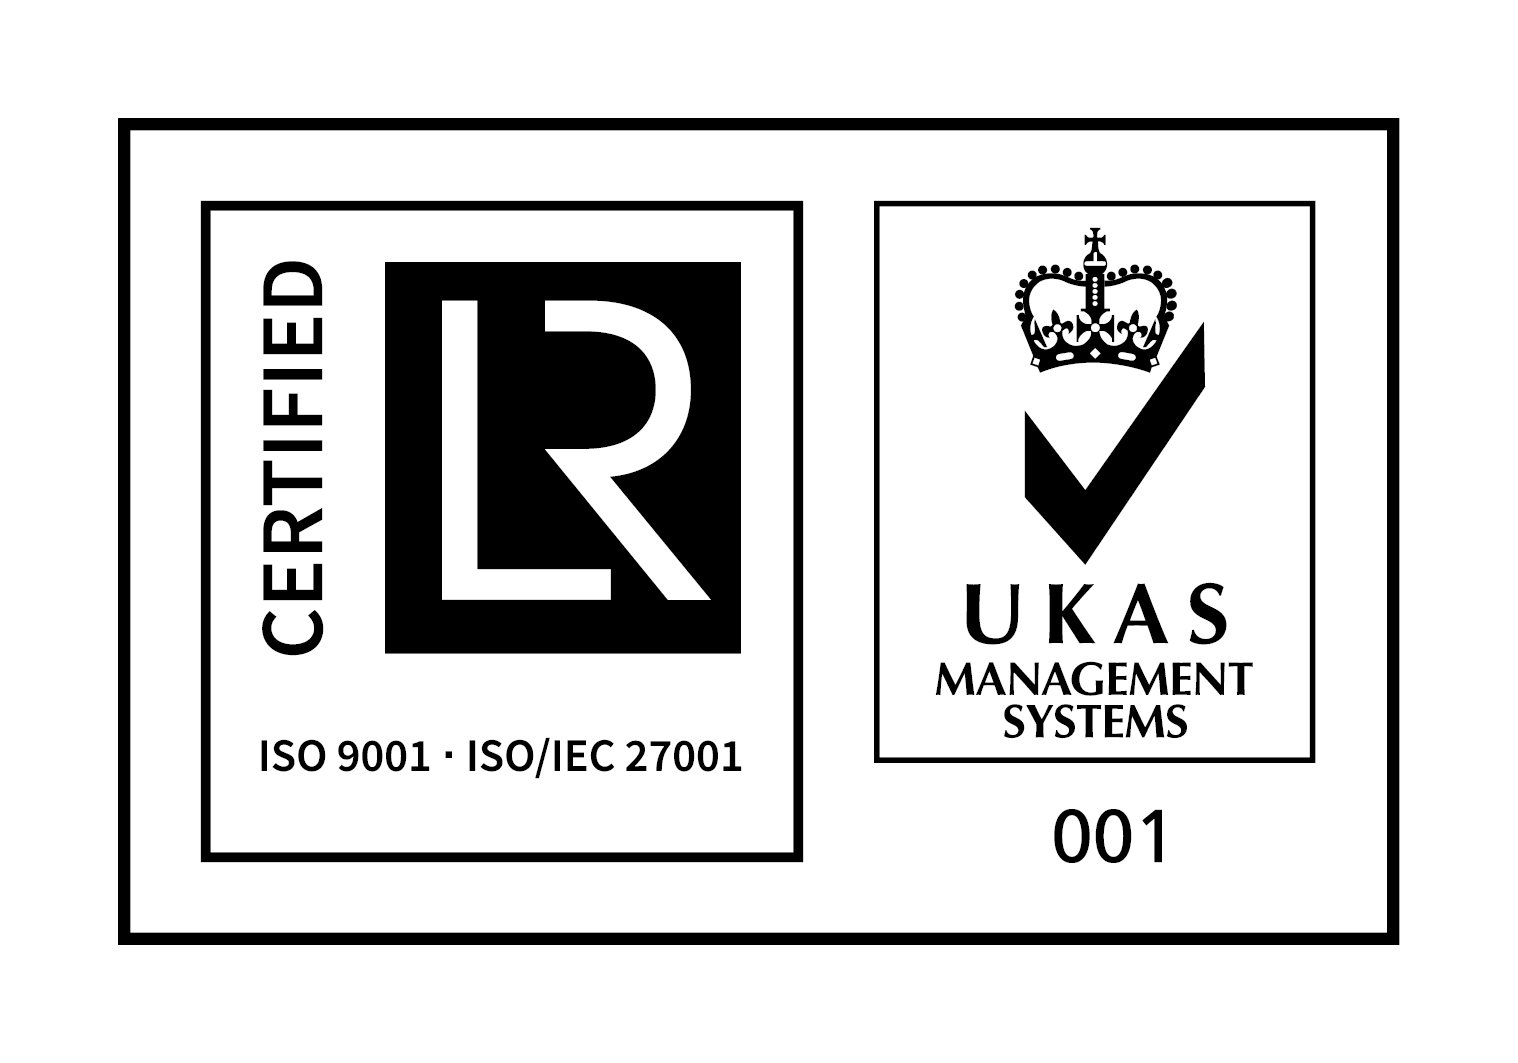 OmPrompt | Certification: ISO 9001 - ISO/IEC 27001 - UKAS Management Systems 001